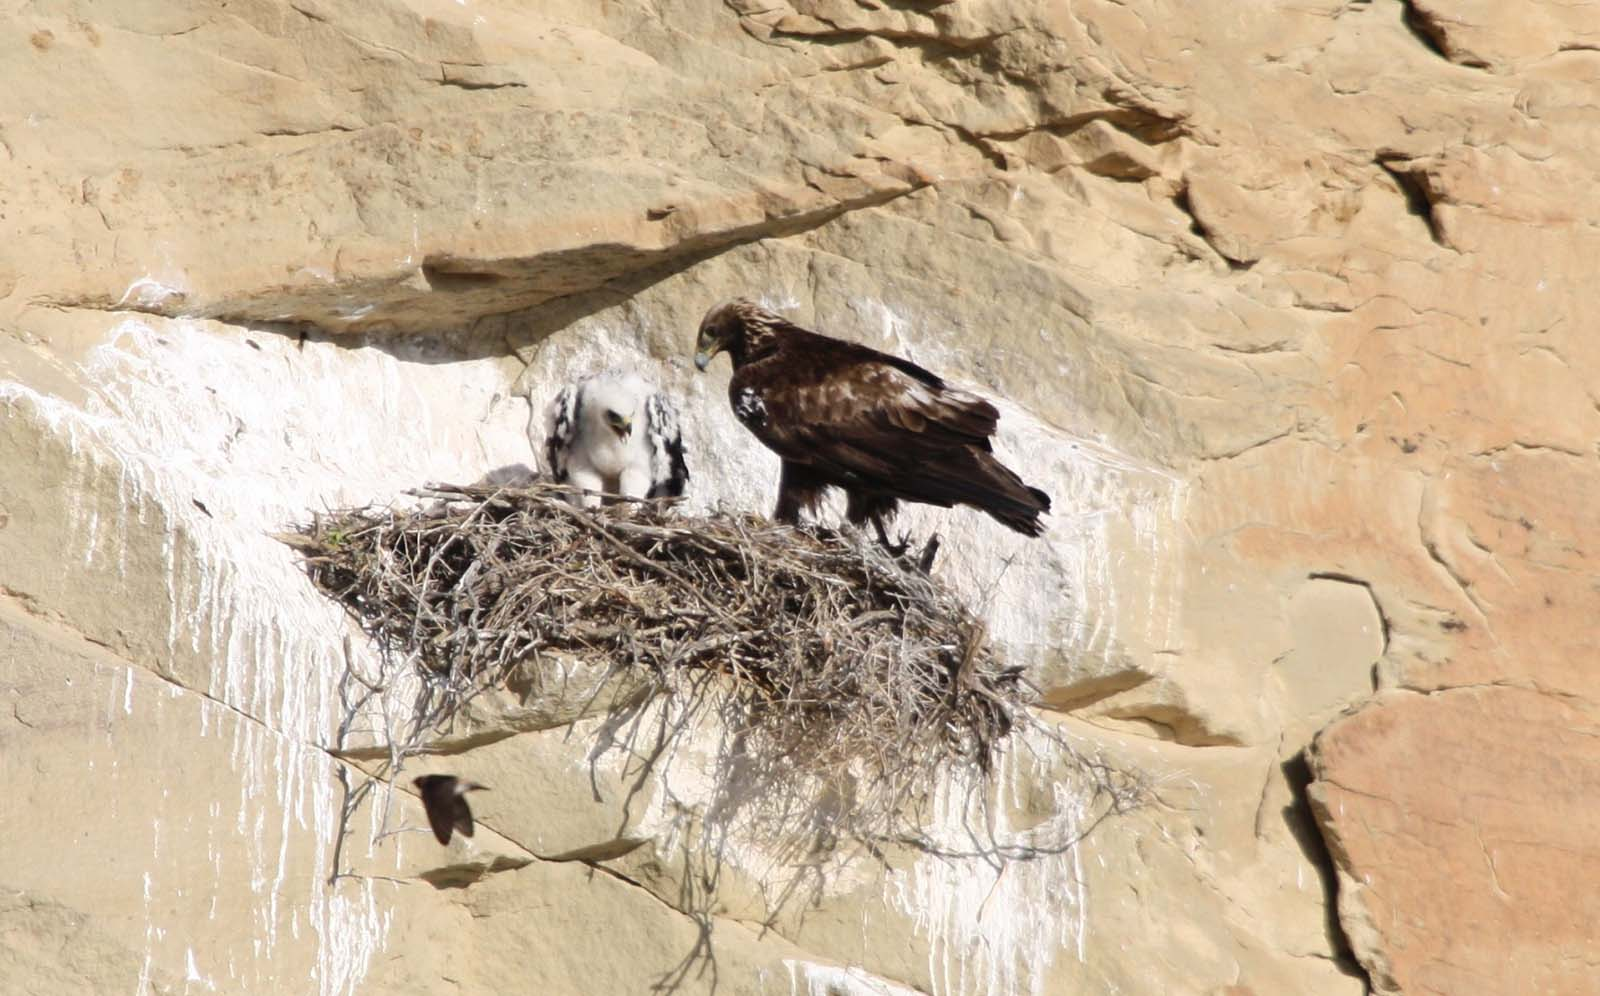 Golden Eagle Posse member Dale Schrickling caught this handsome parent watching over a nestling. Photo by Dale Schrickling.